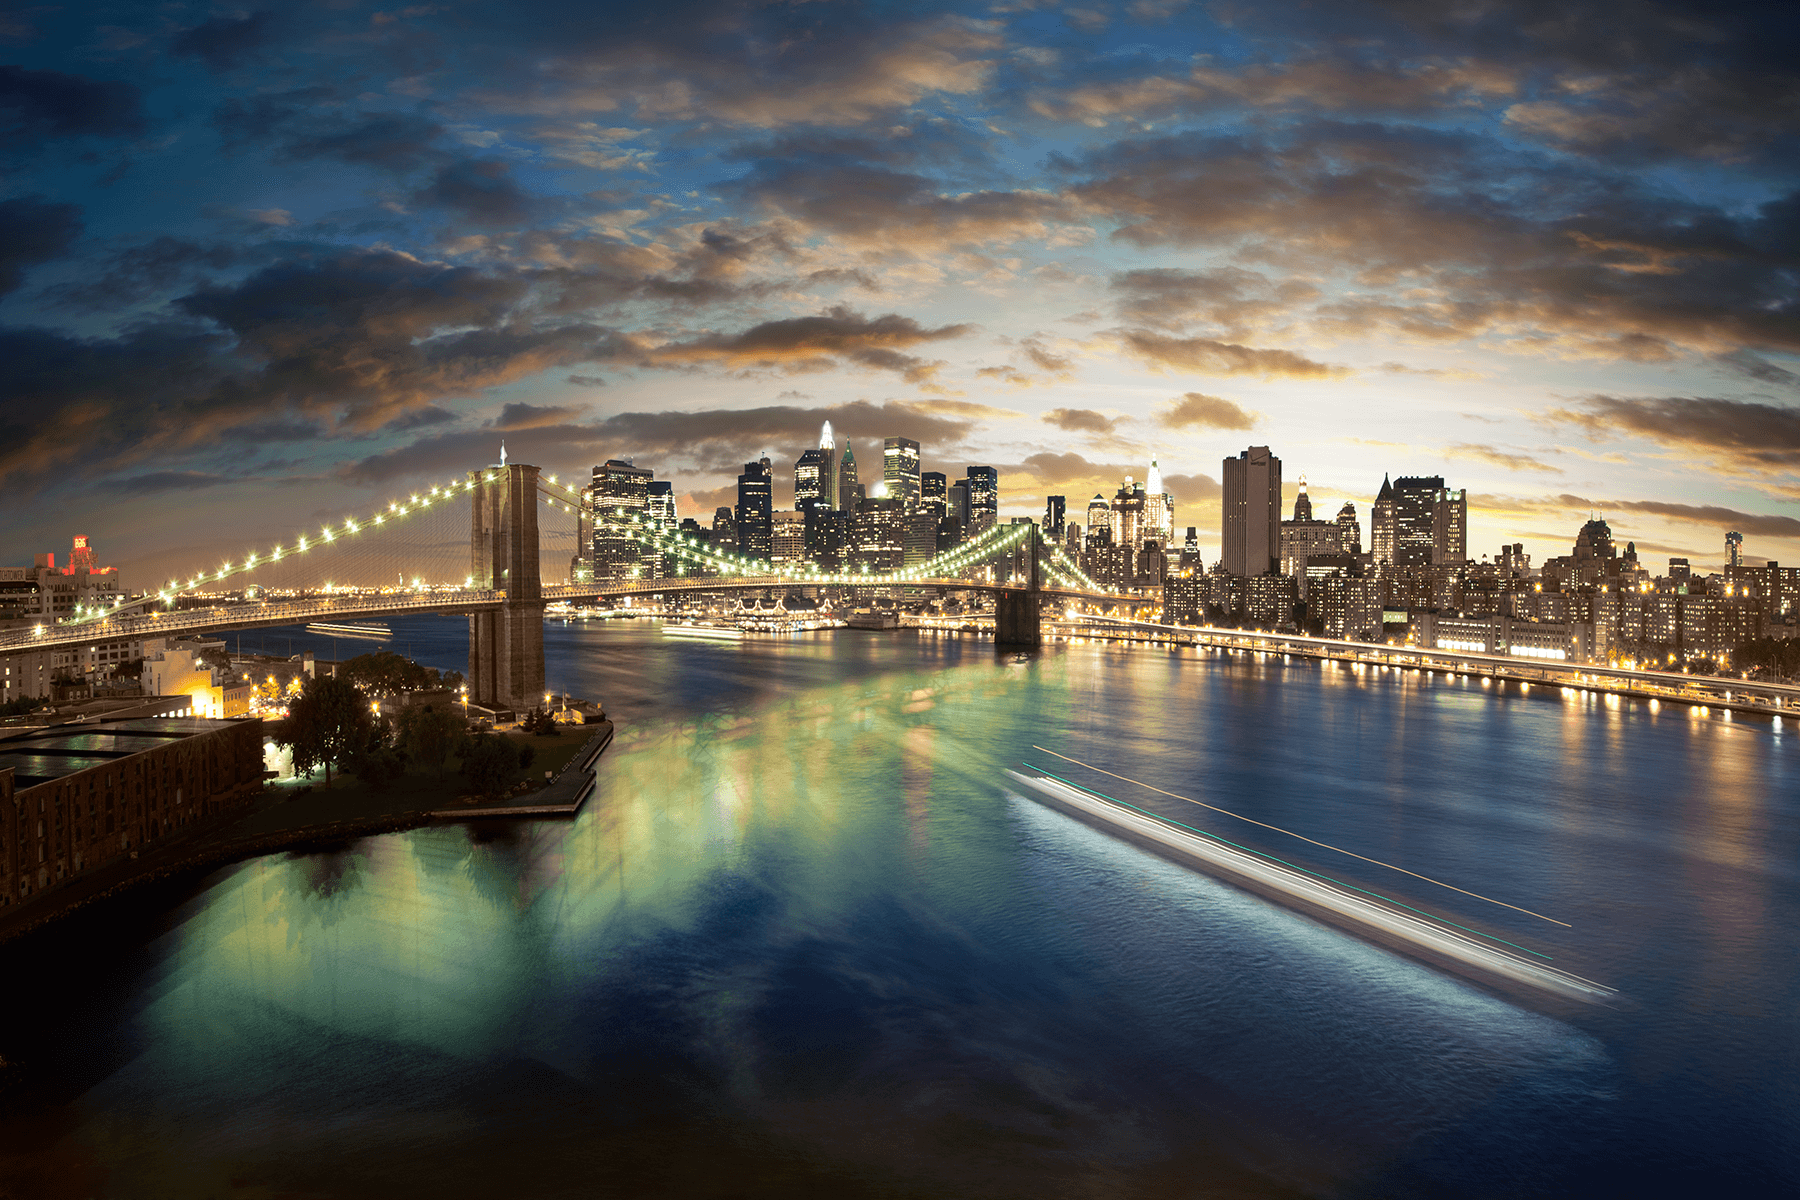 Fototapeten: Magische Brooklyn Bridge